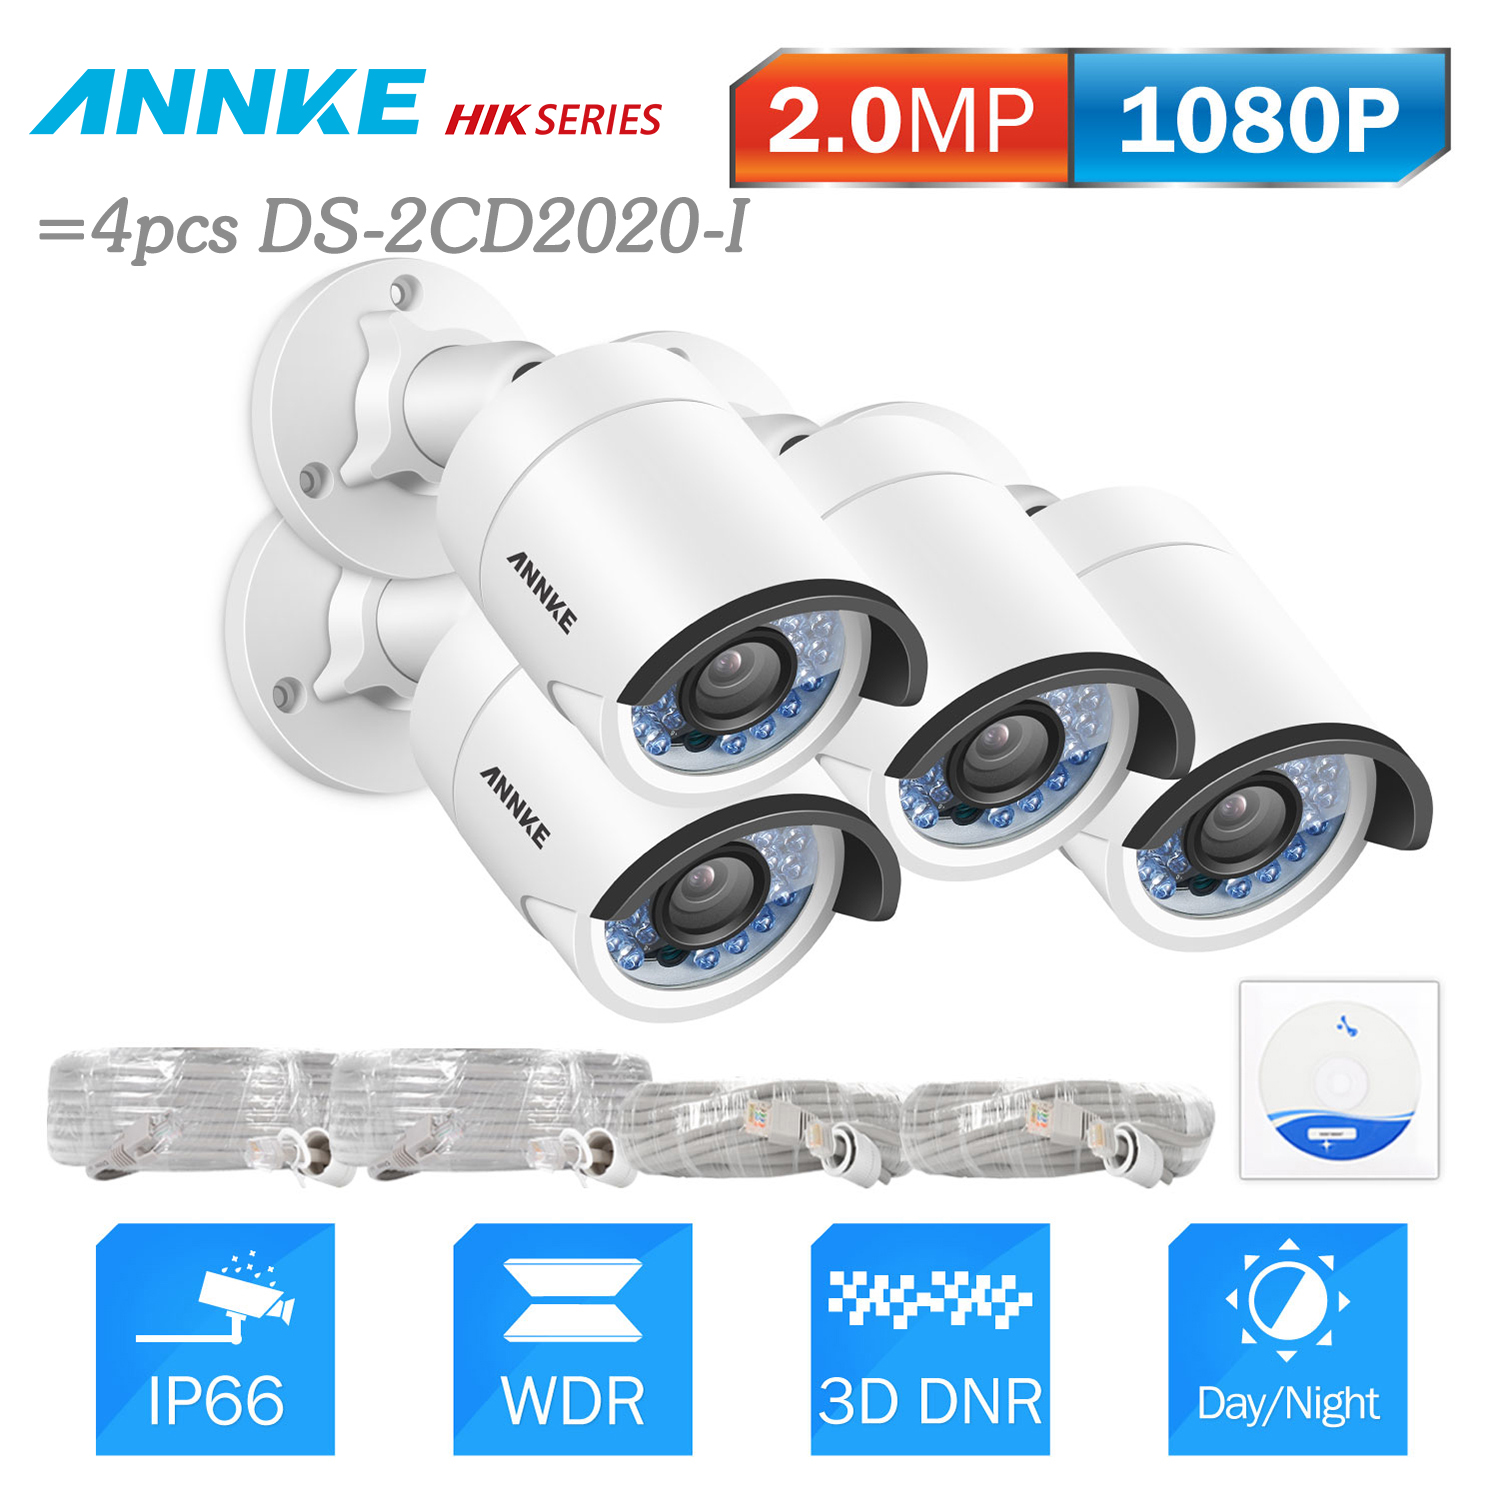 ANNKE 4pcs 2.0 MP HD PoE Security Bullet IP Camera 30m Night Vision With IP66 Weatherproof Metal Case=4pcs HIK DS-2CD2020-I bullet camera tube camera headset holder with varied size in diameter